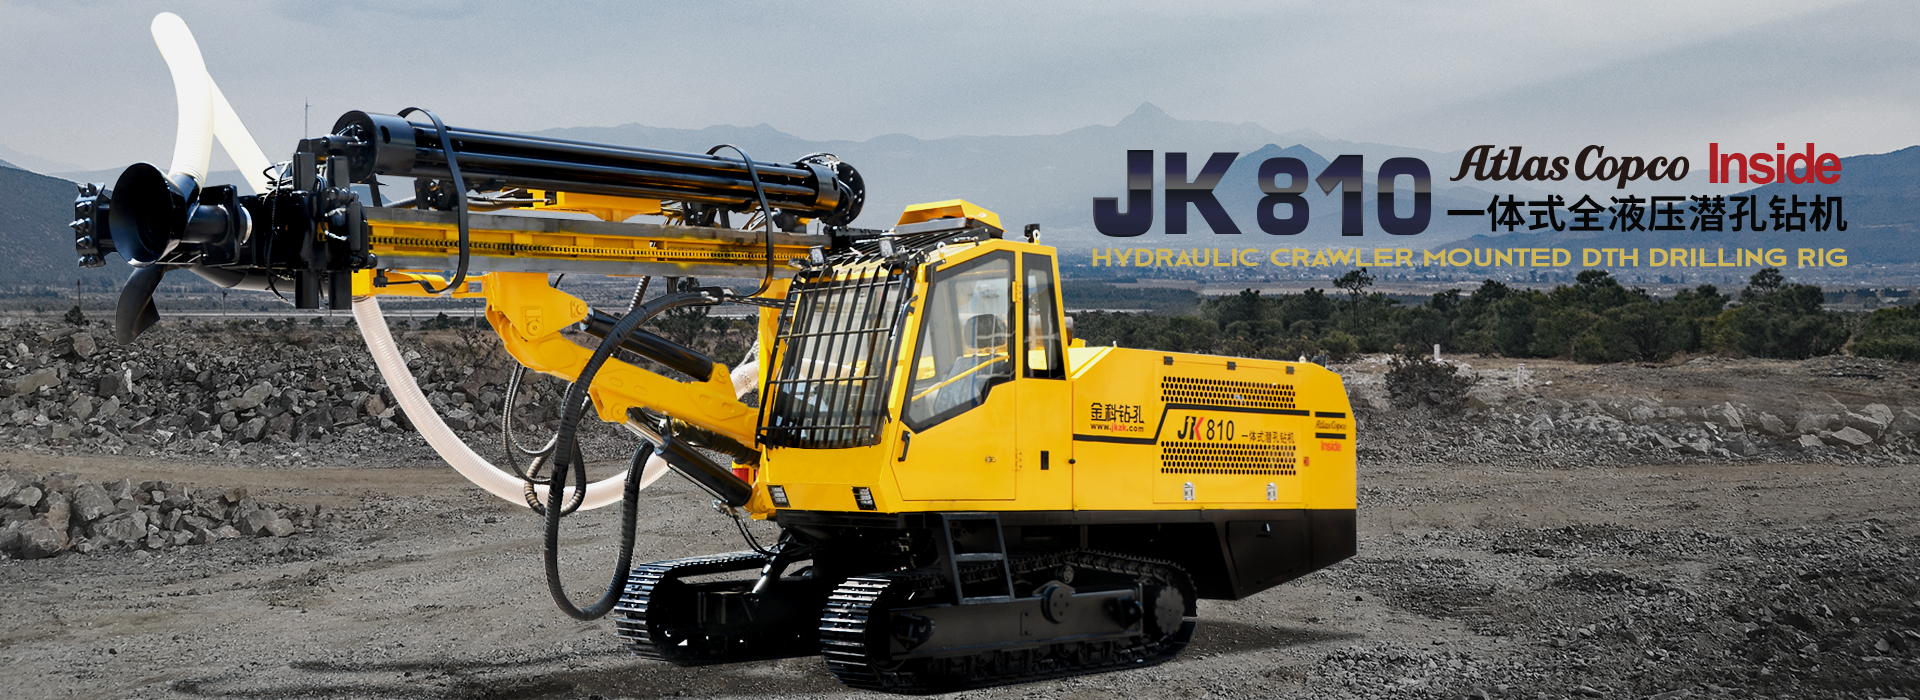 JK810 all-in-one hydraulic drilling rig